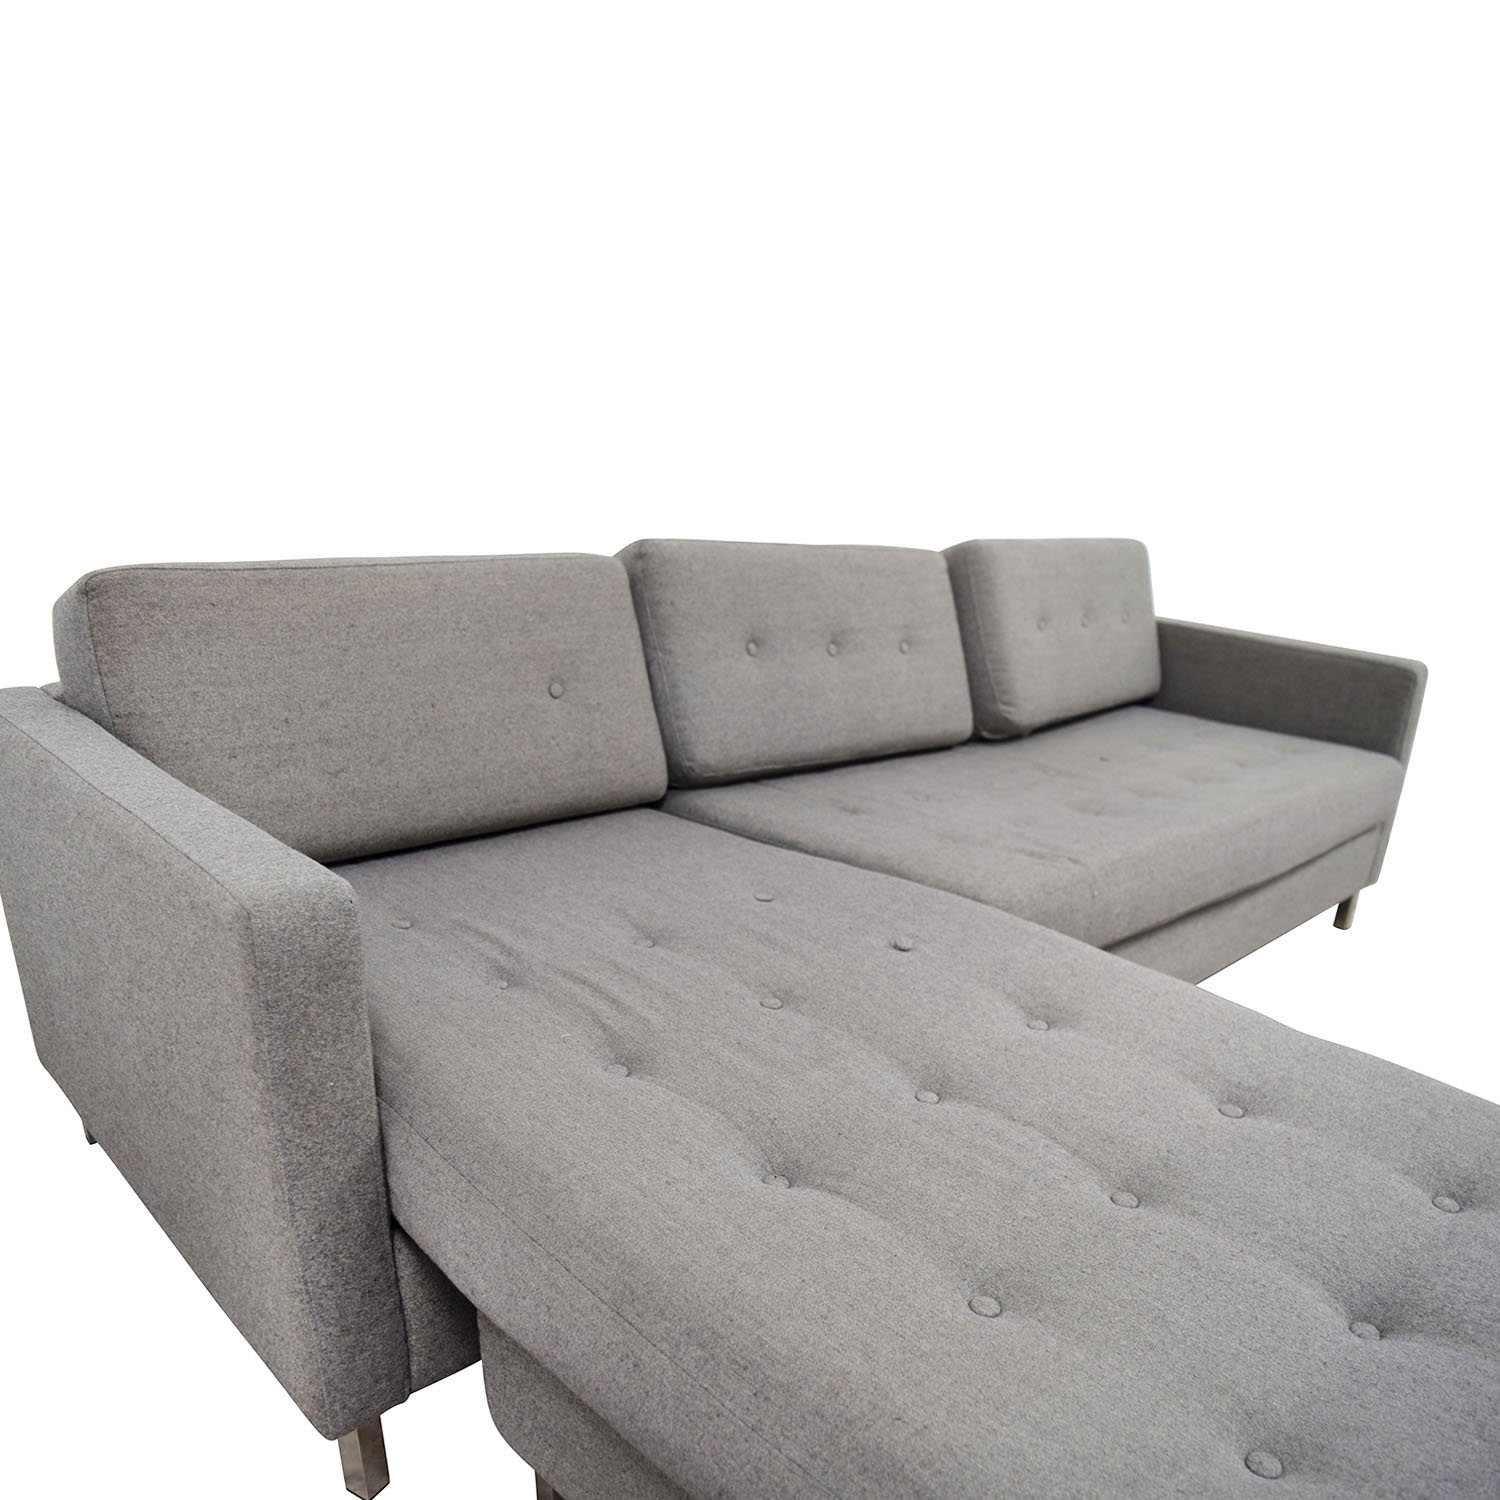 84 off cb2 cb2 grey tufted chaise sectional sofas. Black Bedroom Furniture Sets. Home Design Ideas